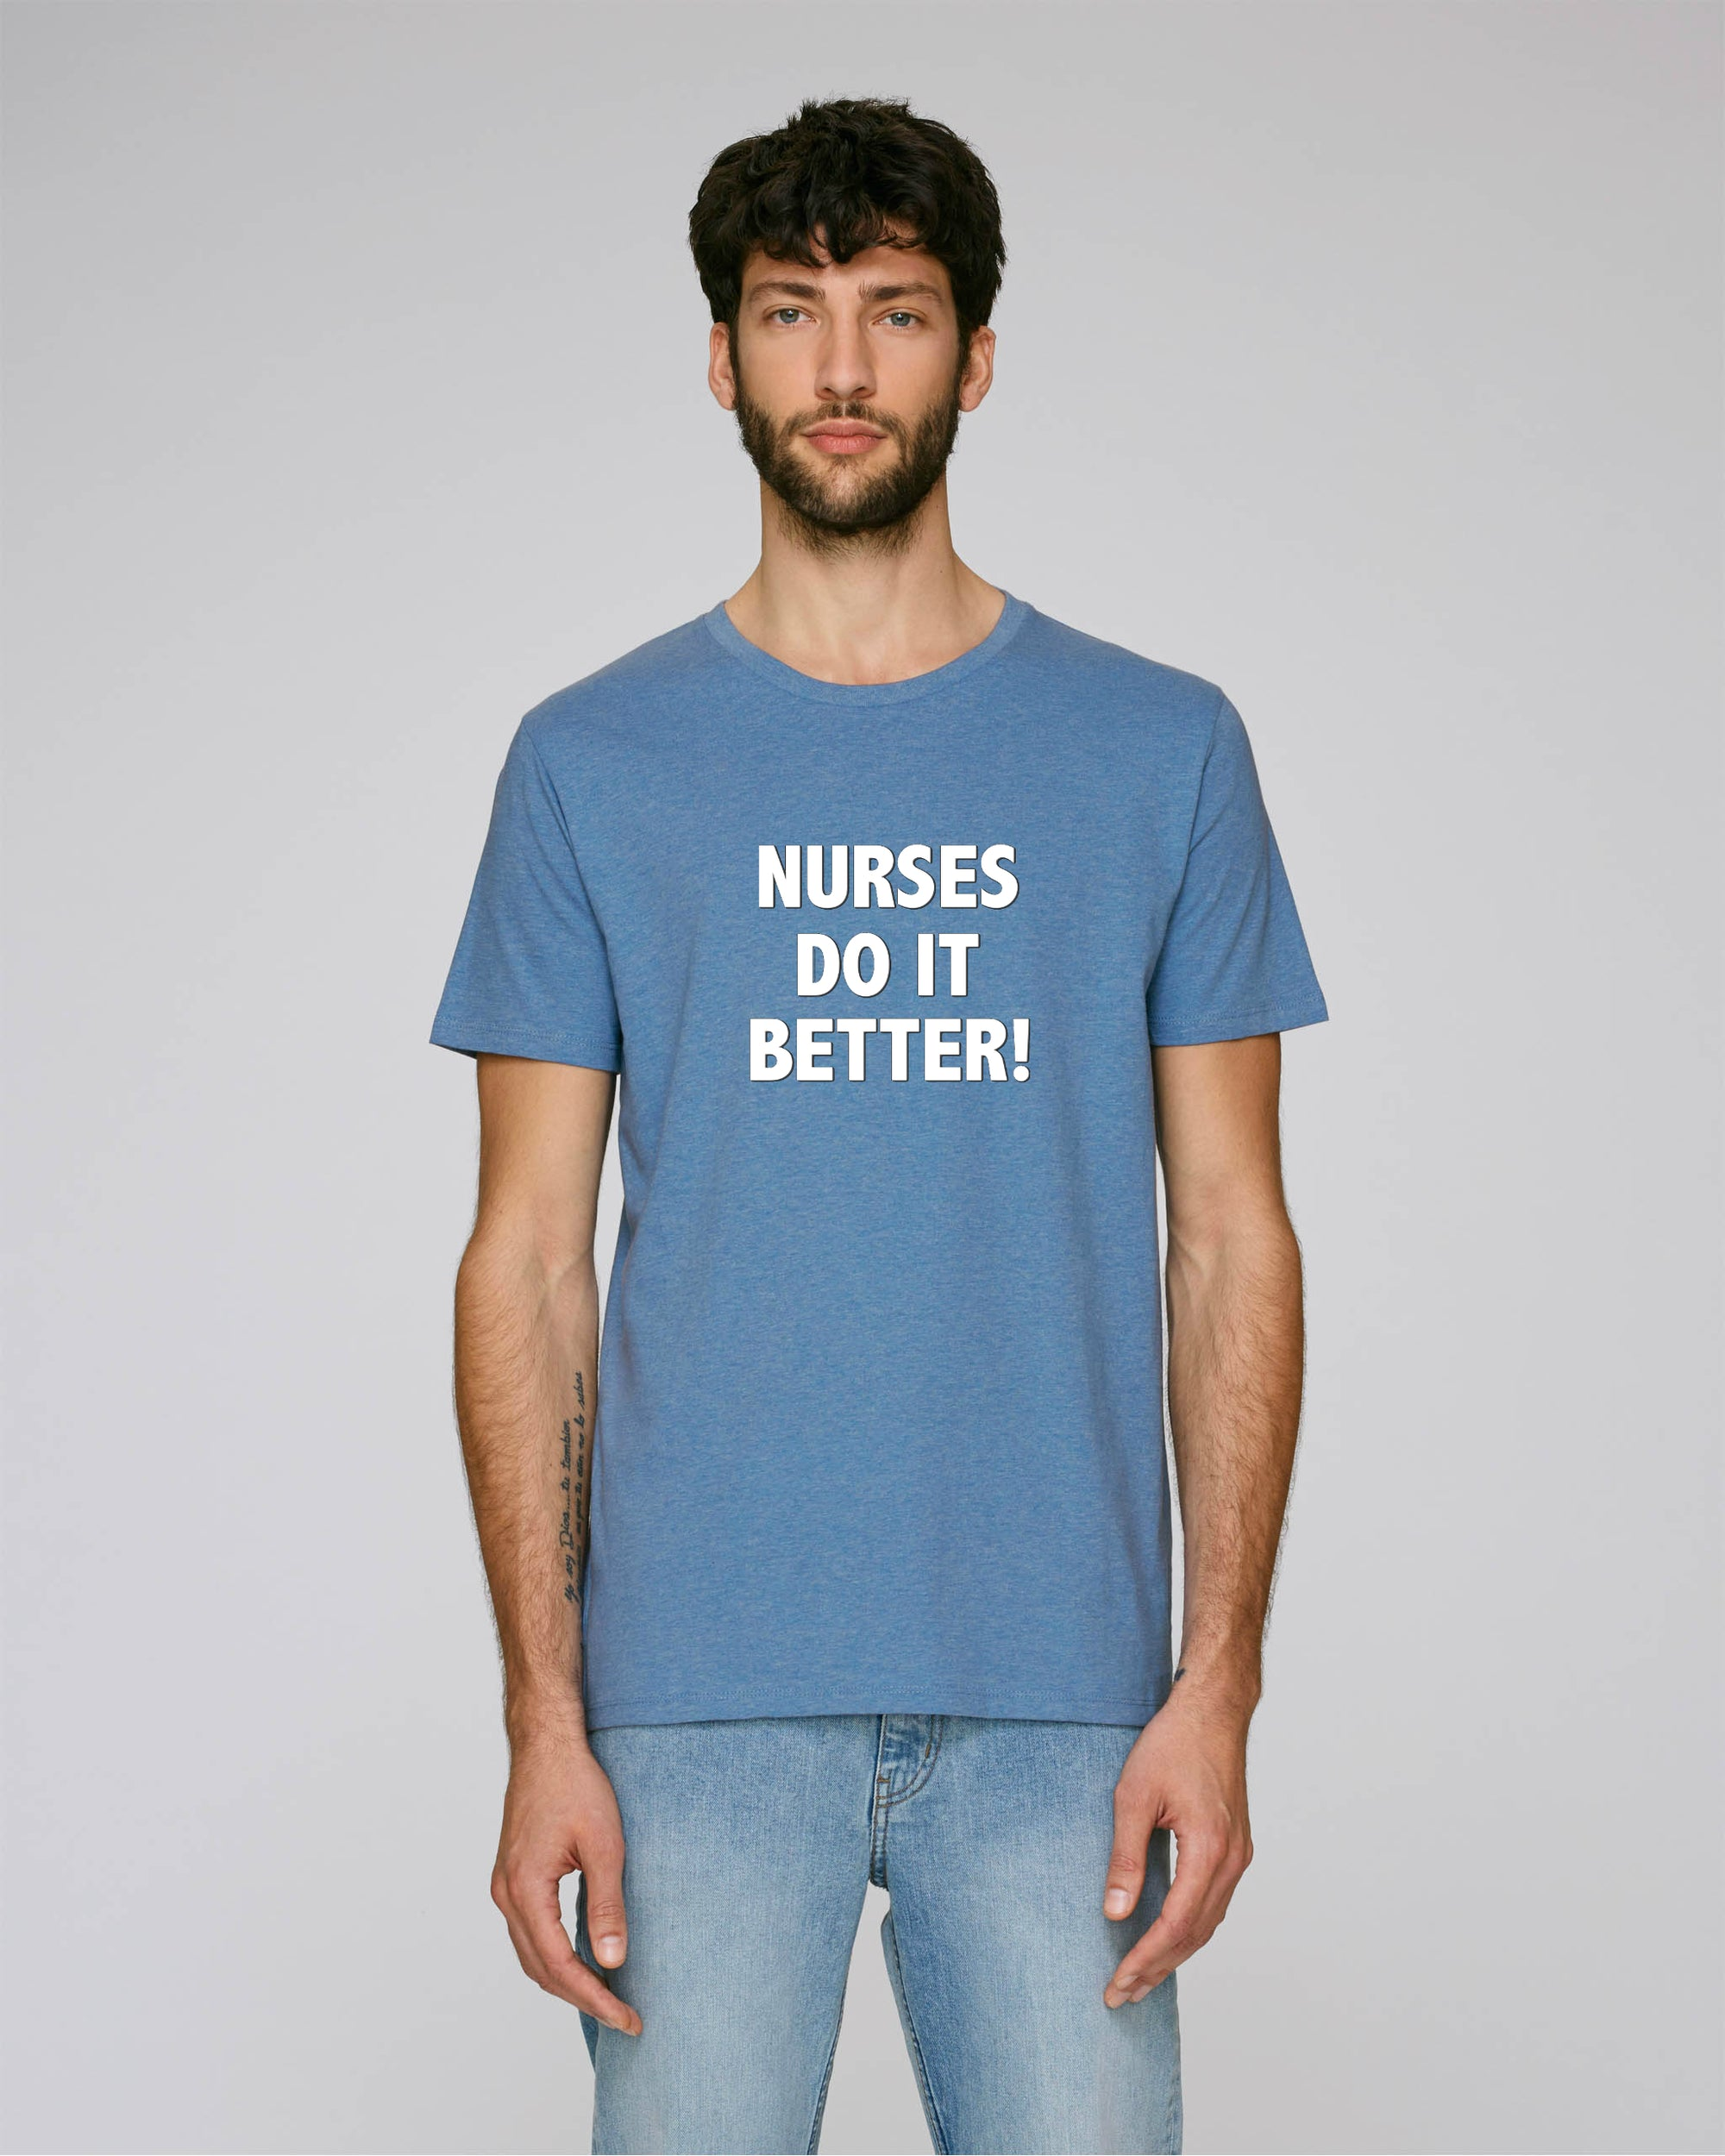 'NURSES DO IT BETTER' EMBROIDERED FITTED ORGANIC COTTON UNISEX T-SHIRT